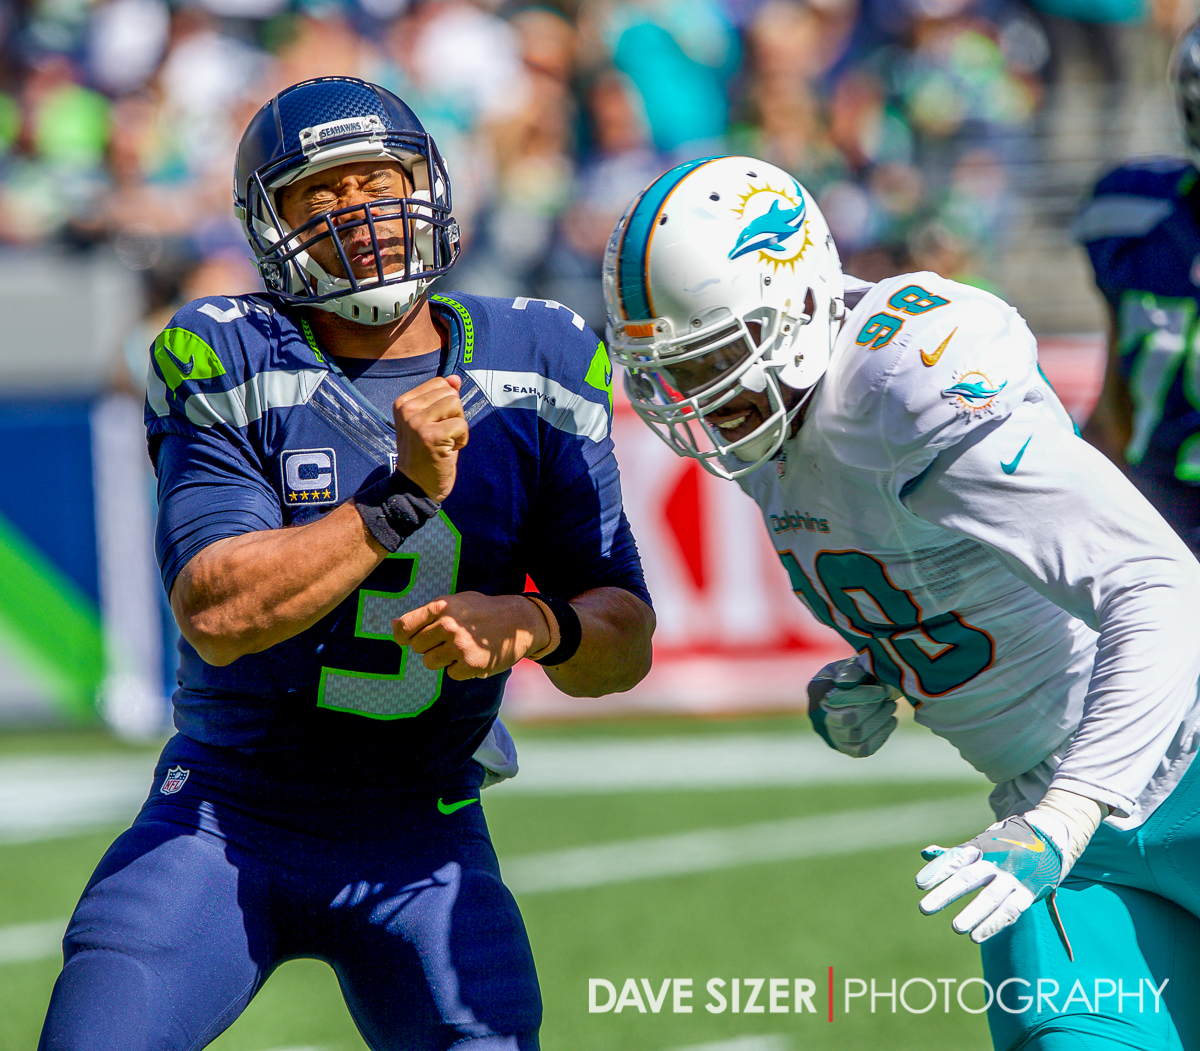 Russell Wilson takes a shot after just getting a pass away.